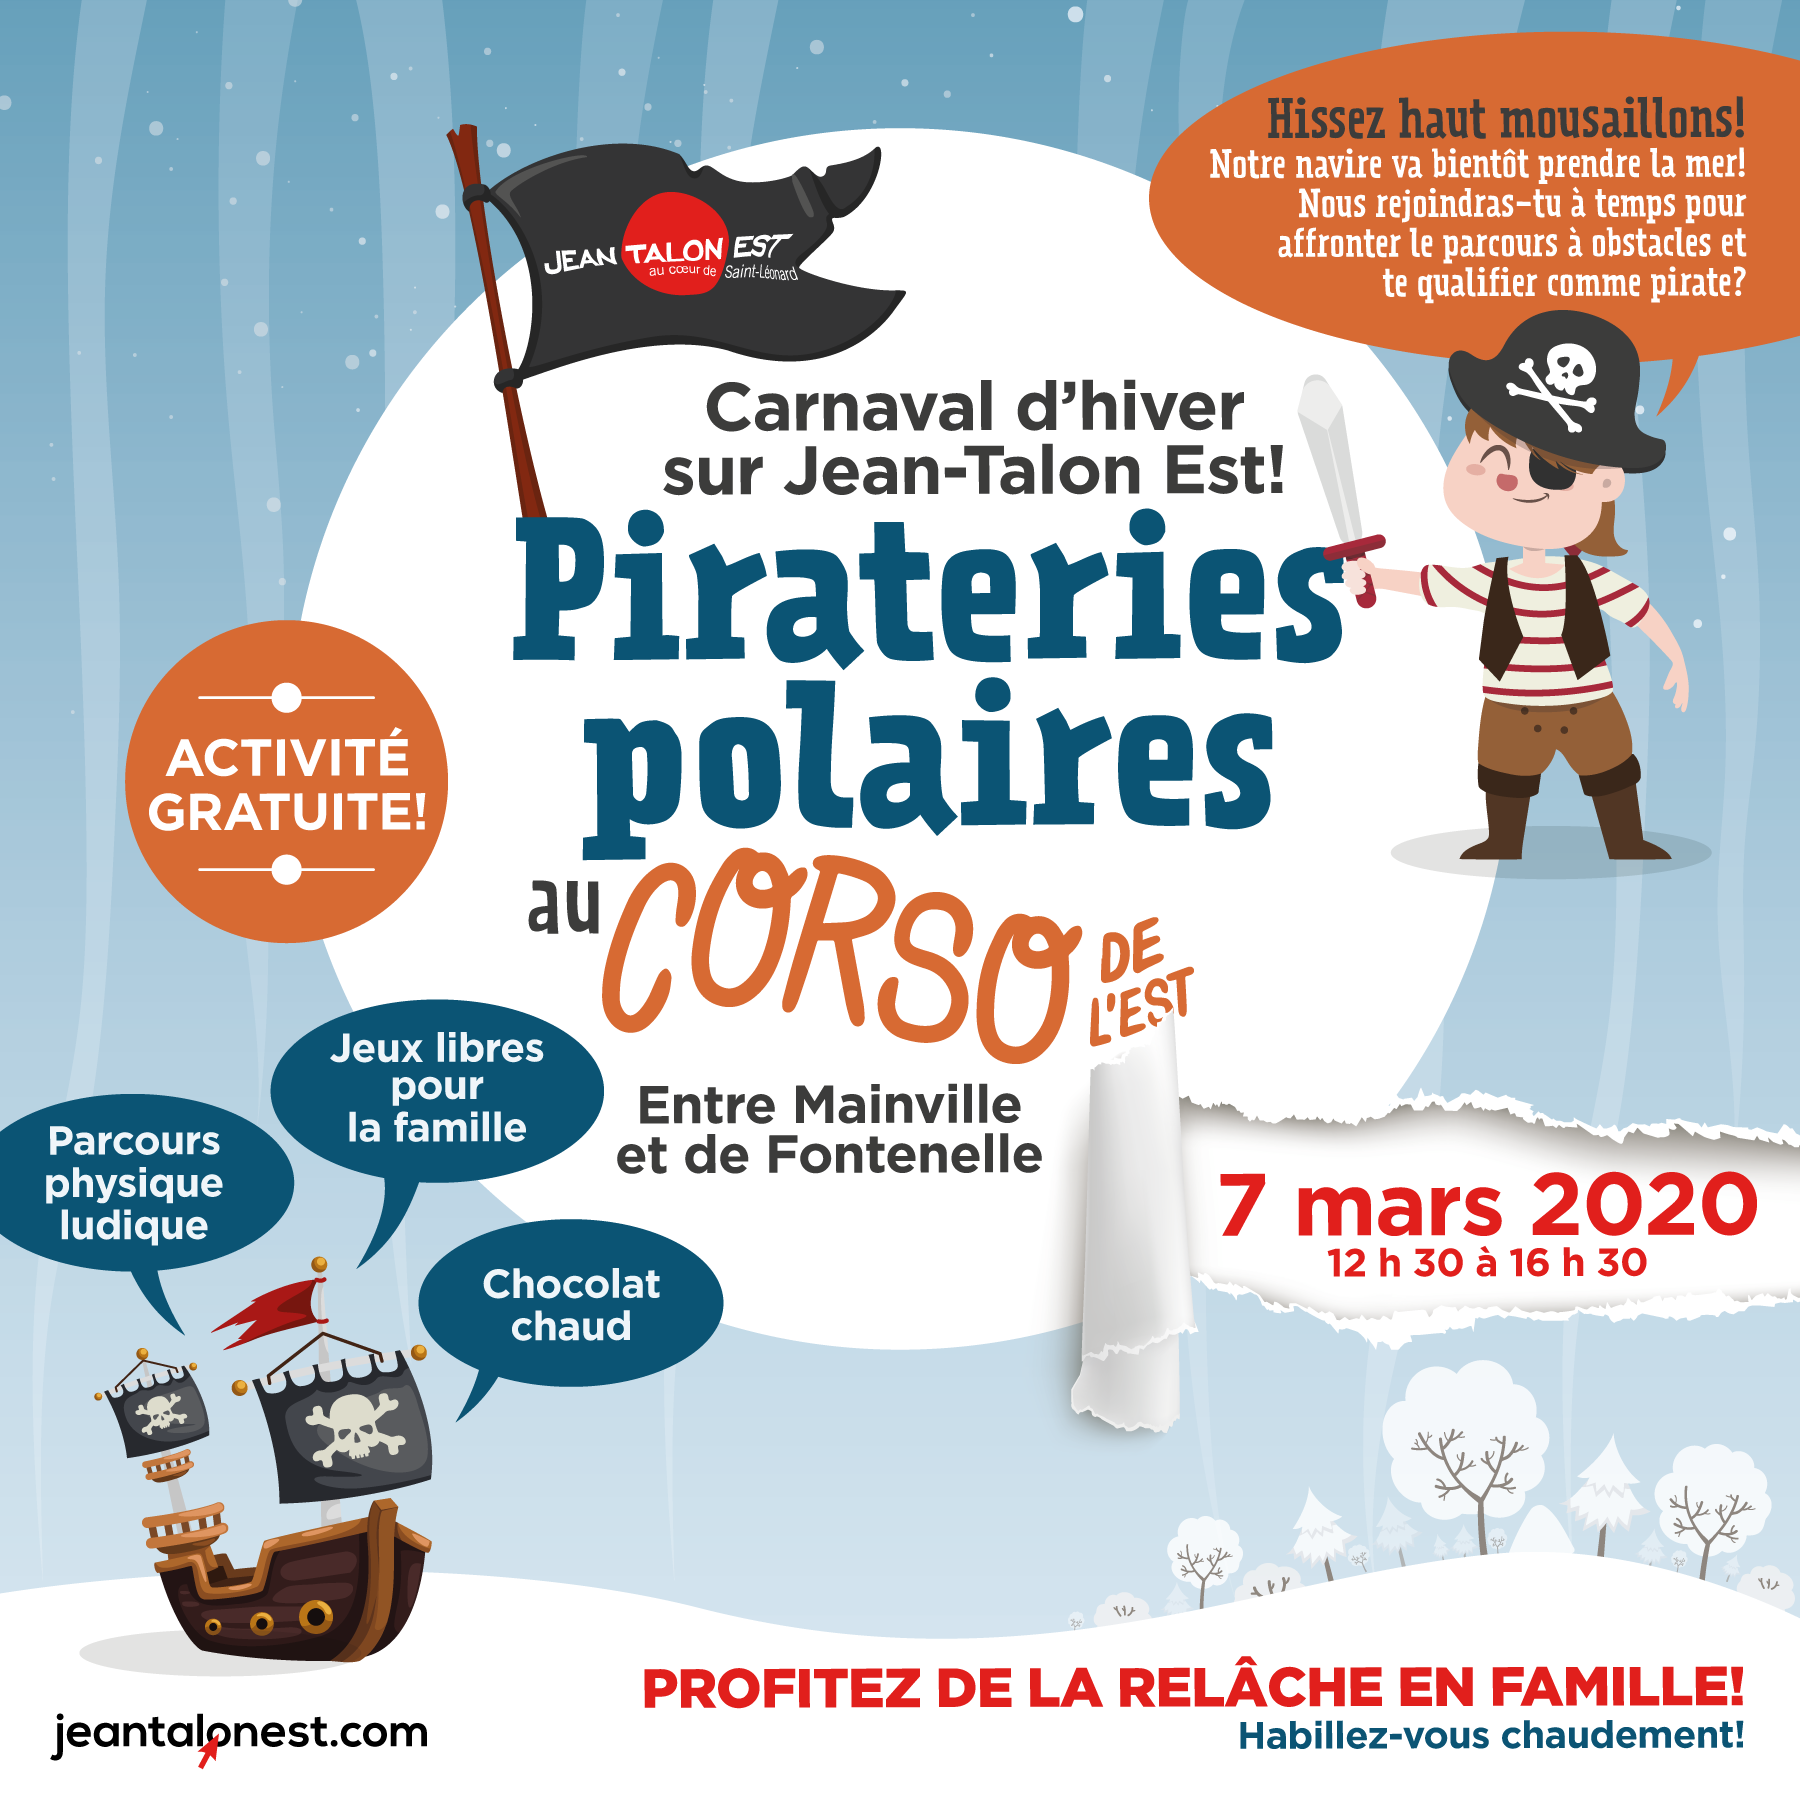 Pirateries polaires au Corso de l'Est